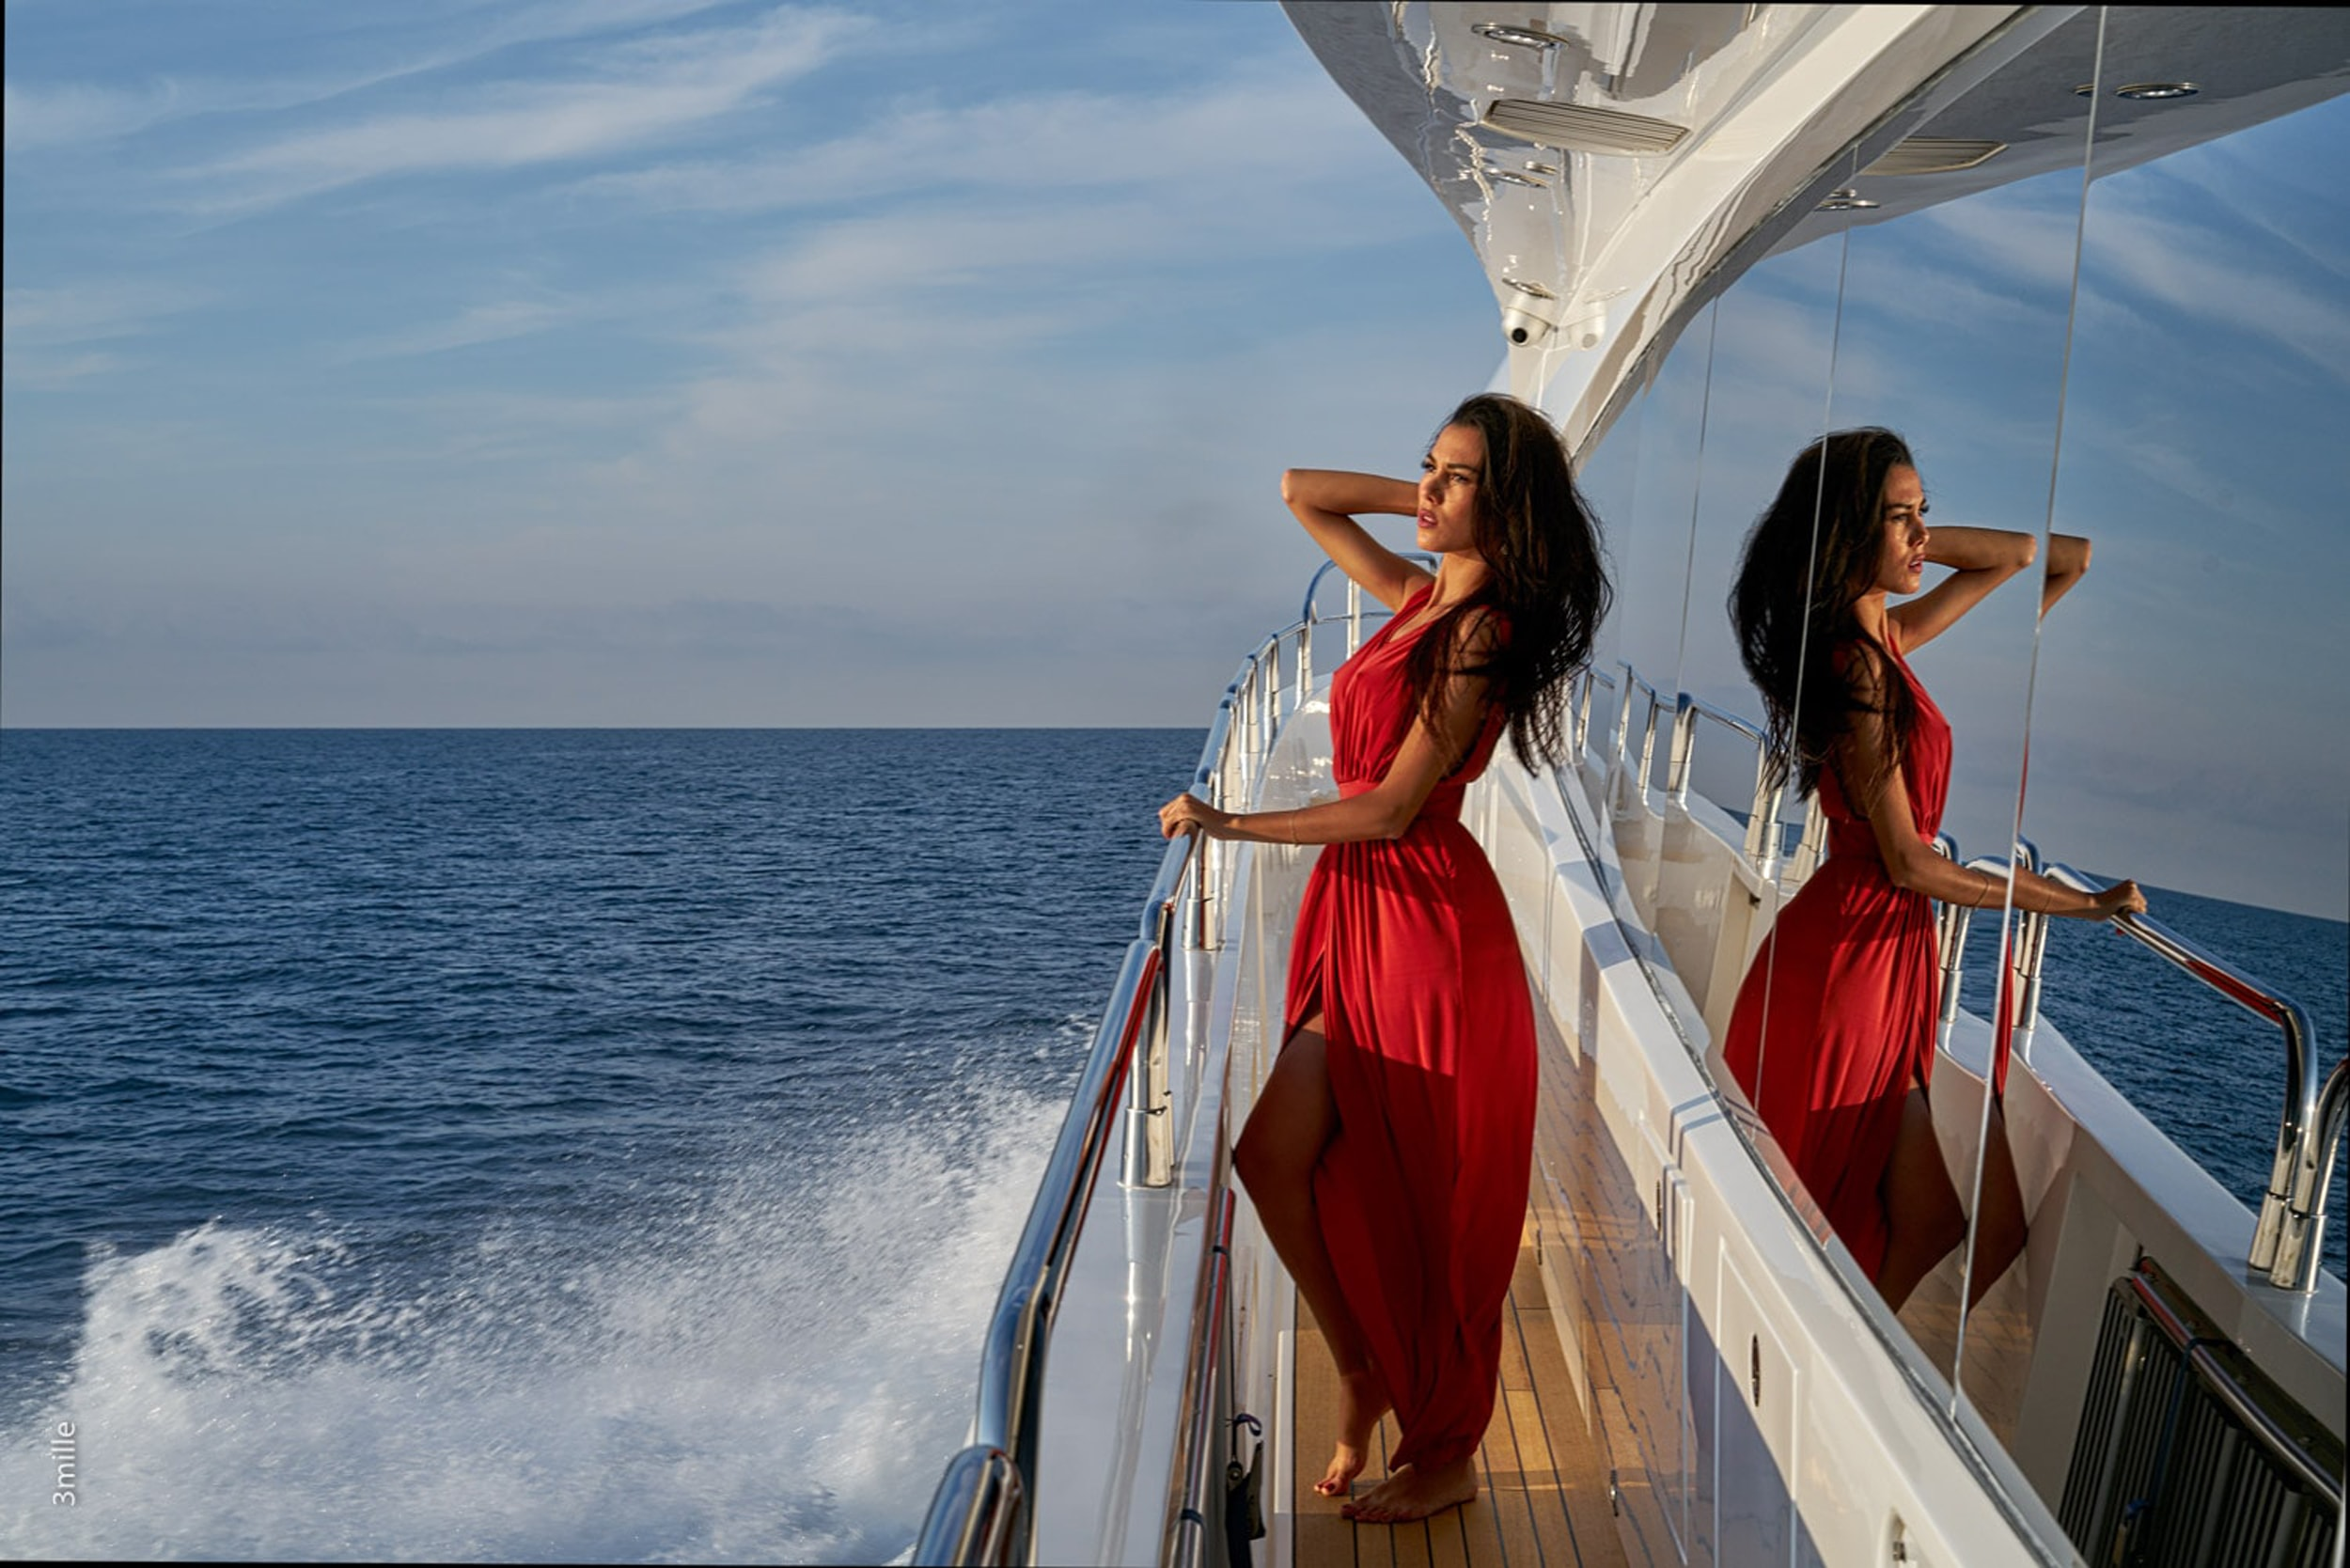 Superyacht for sale and megayacht for sale find the best luxury yacht2